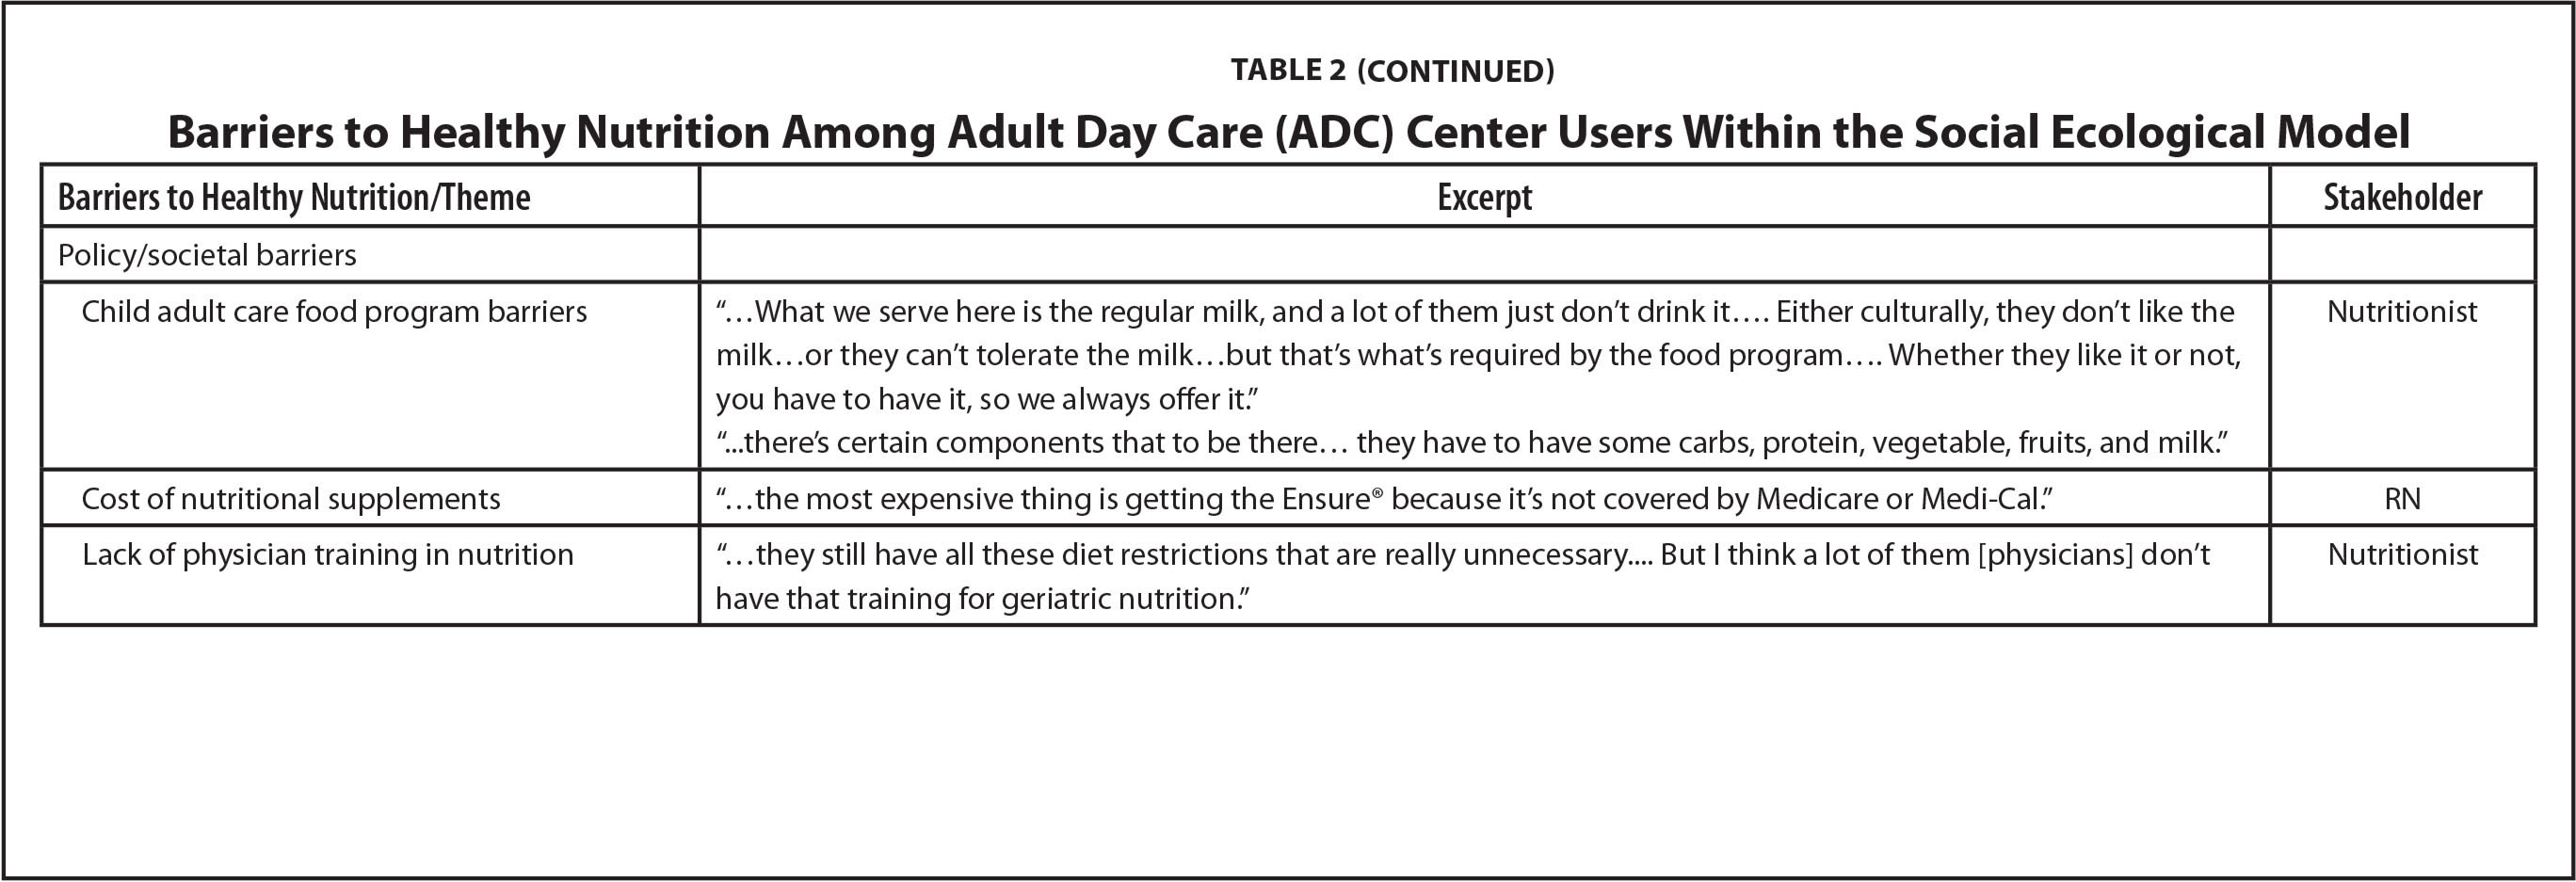 Barriers to Healthy Nutrition Among Adult Day Care (ADC) Center Users Within the Social Ecological Model